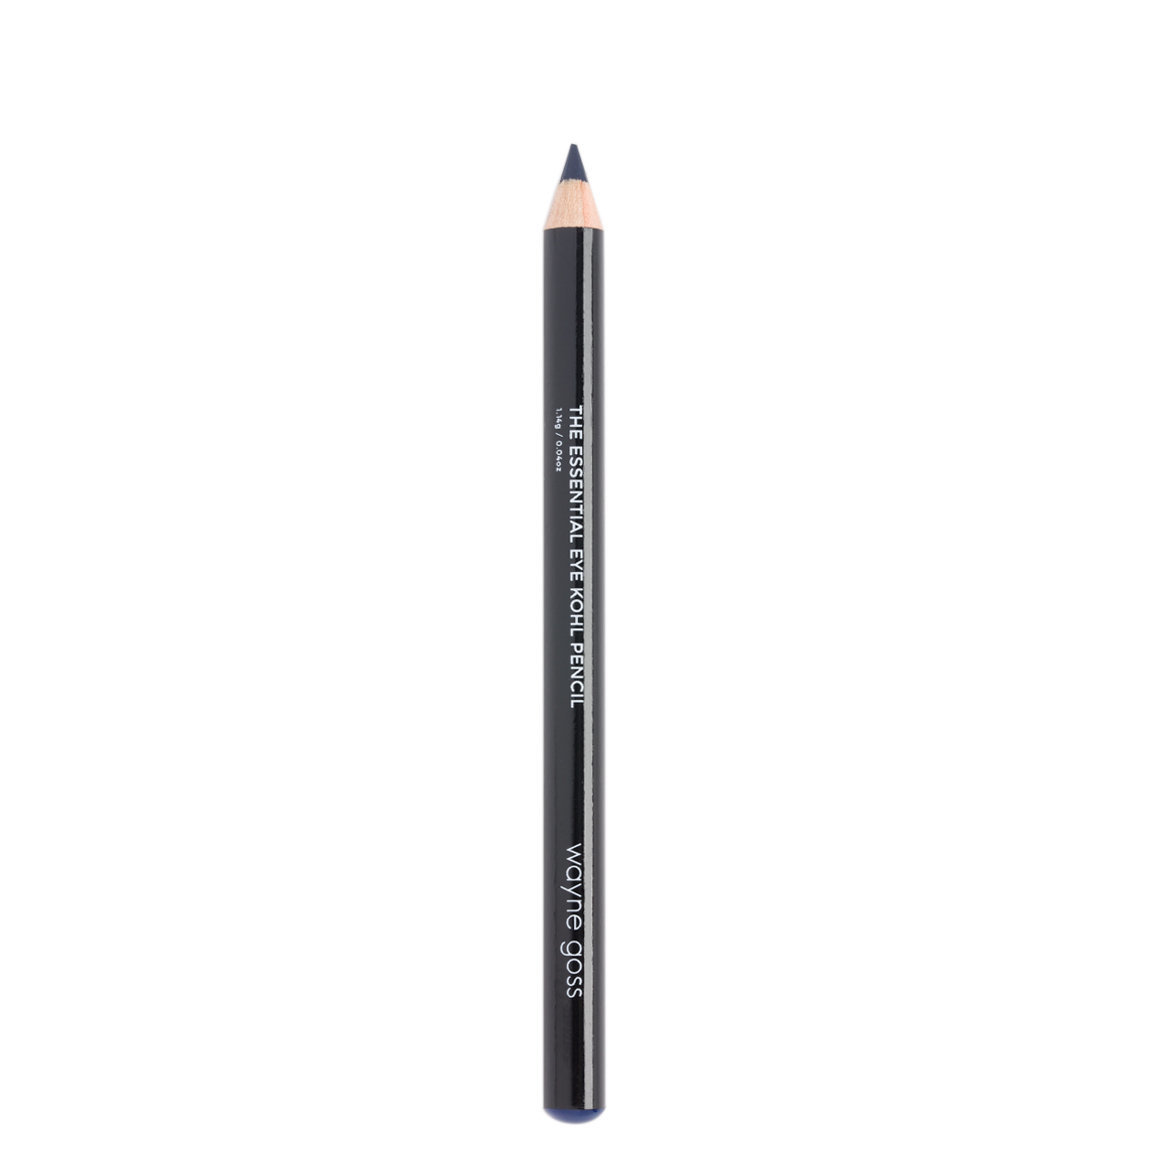 Wayne Goss The Essential Eye Kohl Pencil Blue Sapphire alternative view 1.